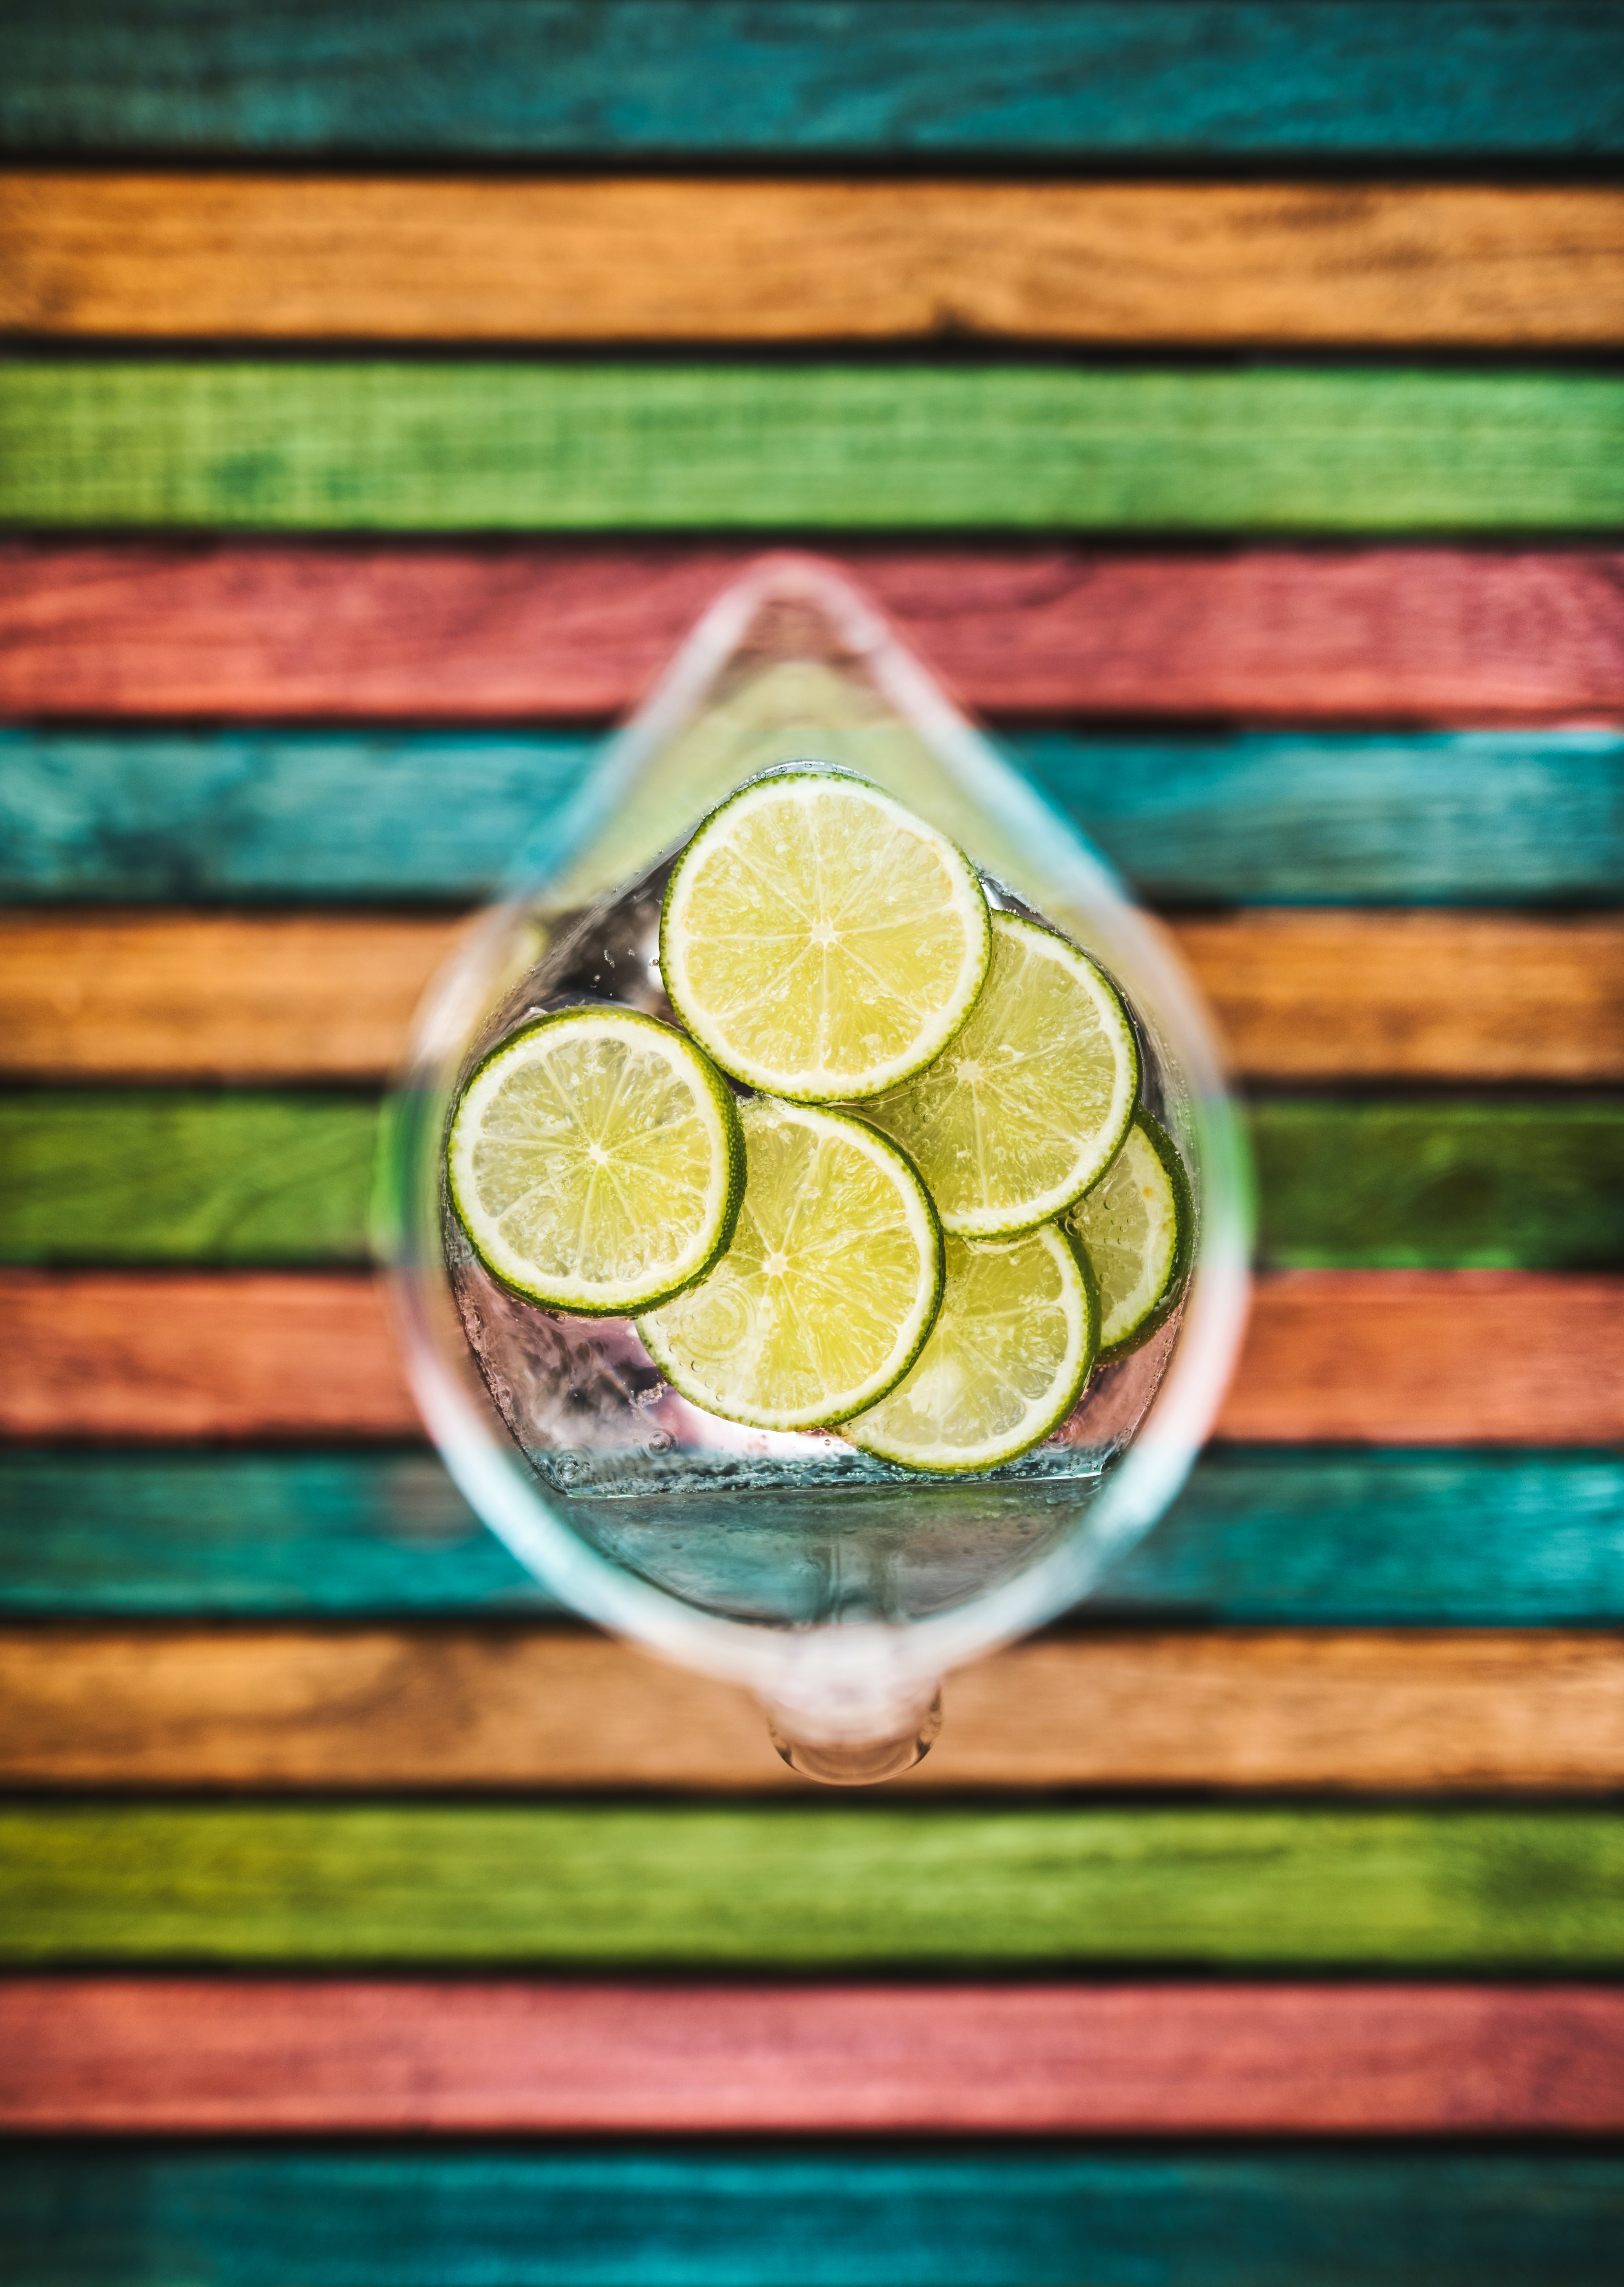 94490 download wallpaper Food, Lime, Jug, Citrus, Drink, Beverage, Lobules, Slices screensavers and pictures for free